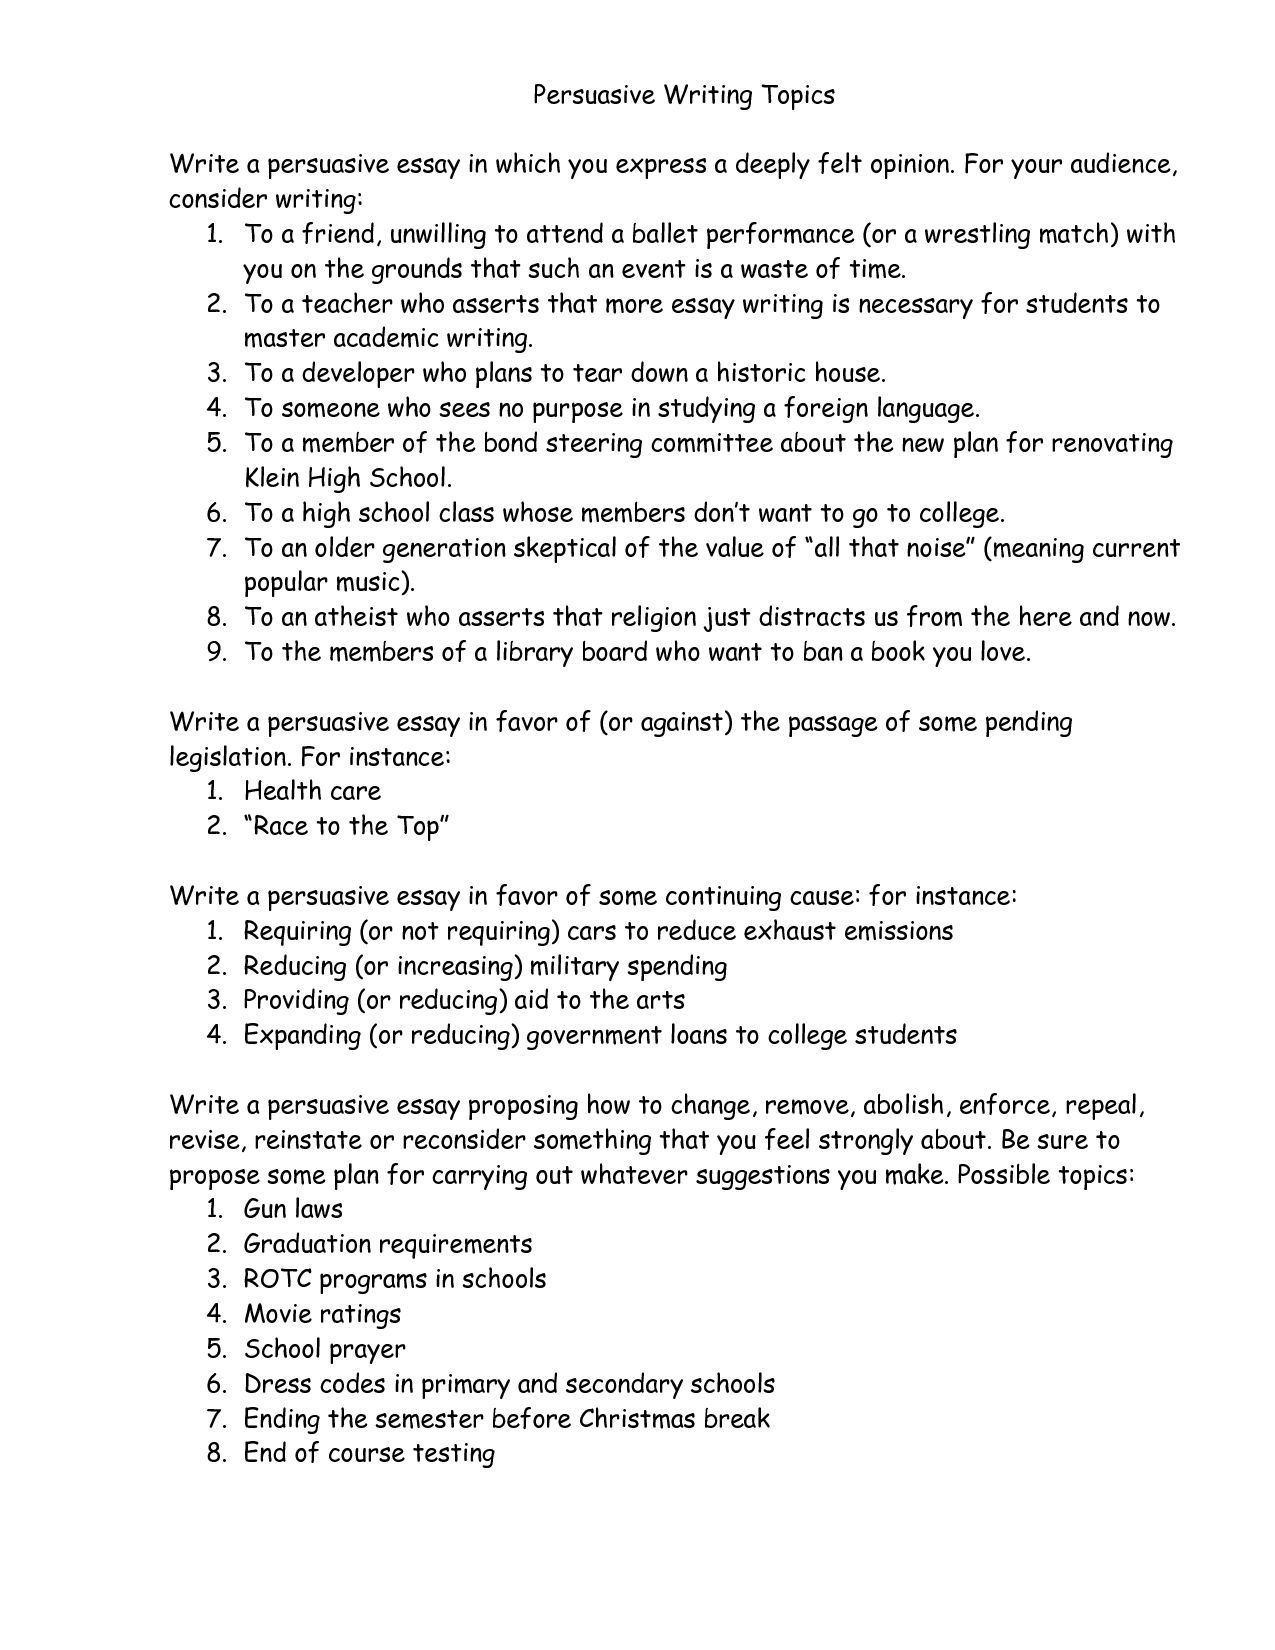 008 Topics For Persuasive Essays Essay Example Incredible 5th Graders Good A Middle Schoolers High School Full